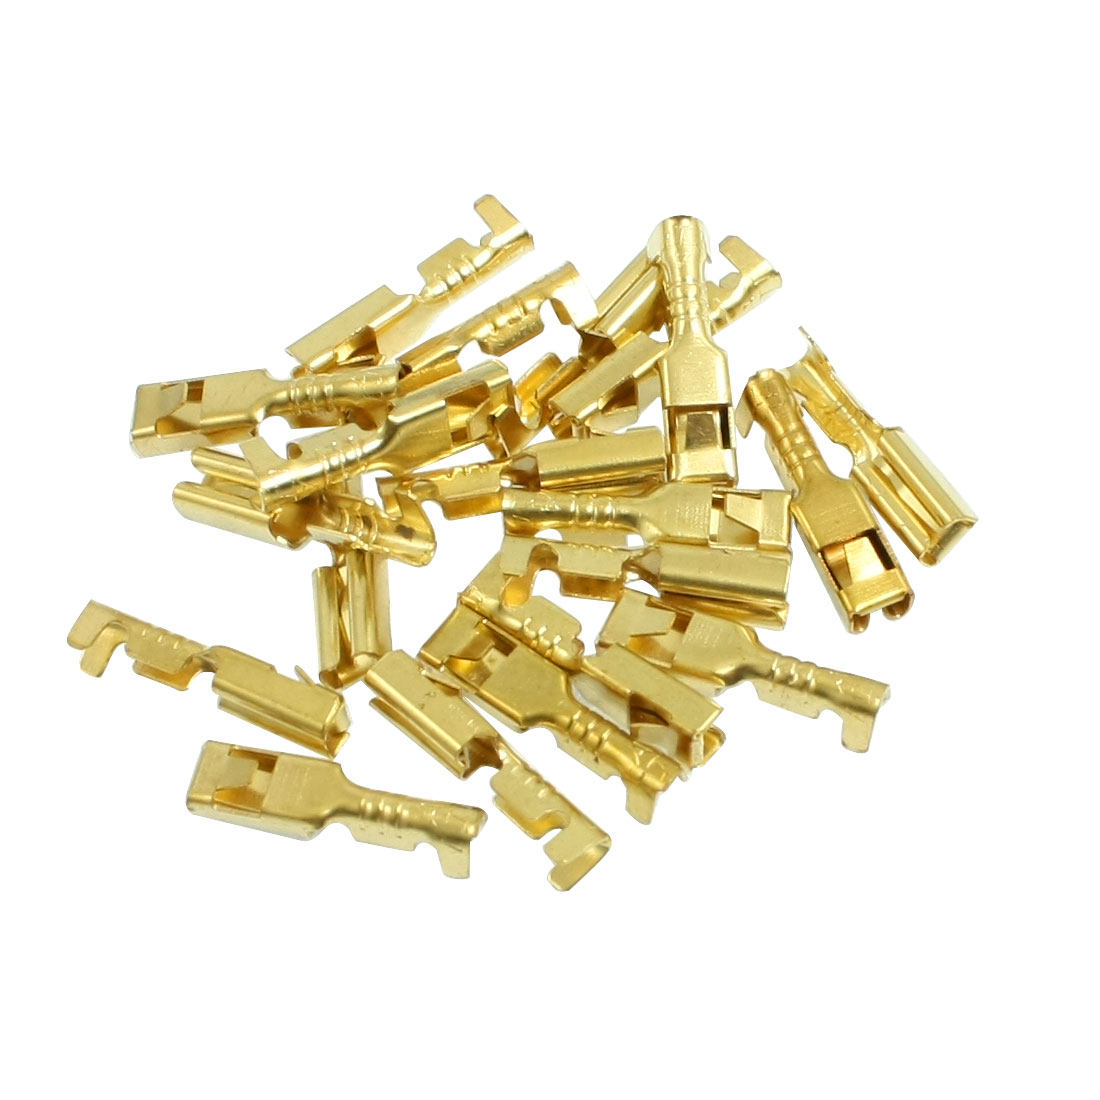 20 x Gold Tone Female Spade Crimp Terminals 2.8mm Wiring Connectors